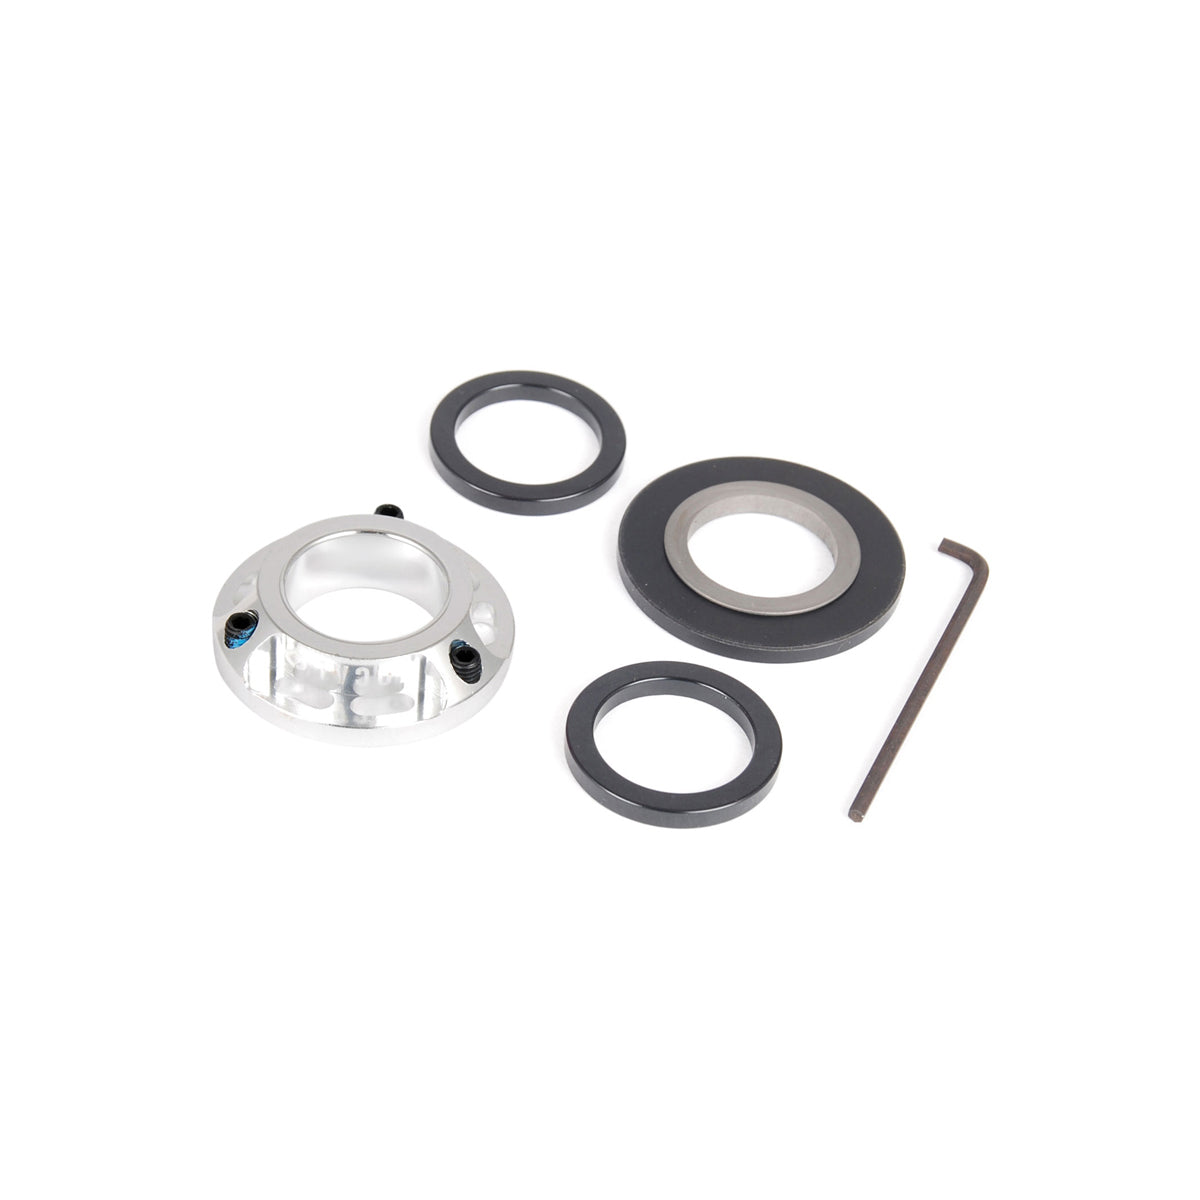 Vocal Vice Mid DRS Upgrade Kit £12.99